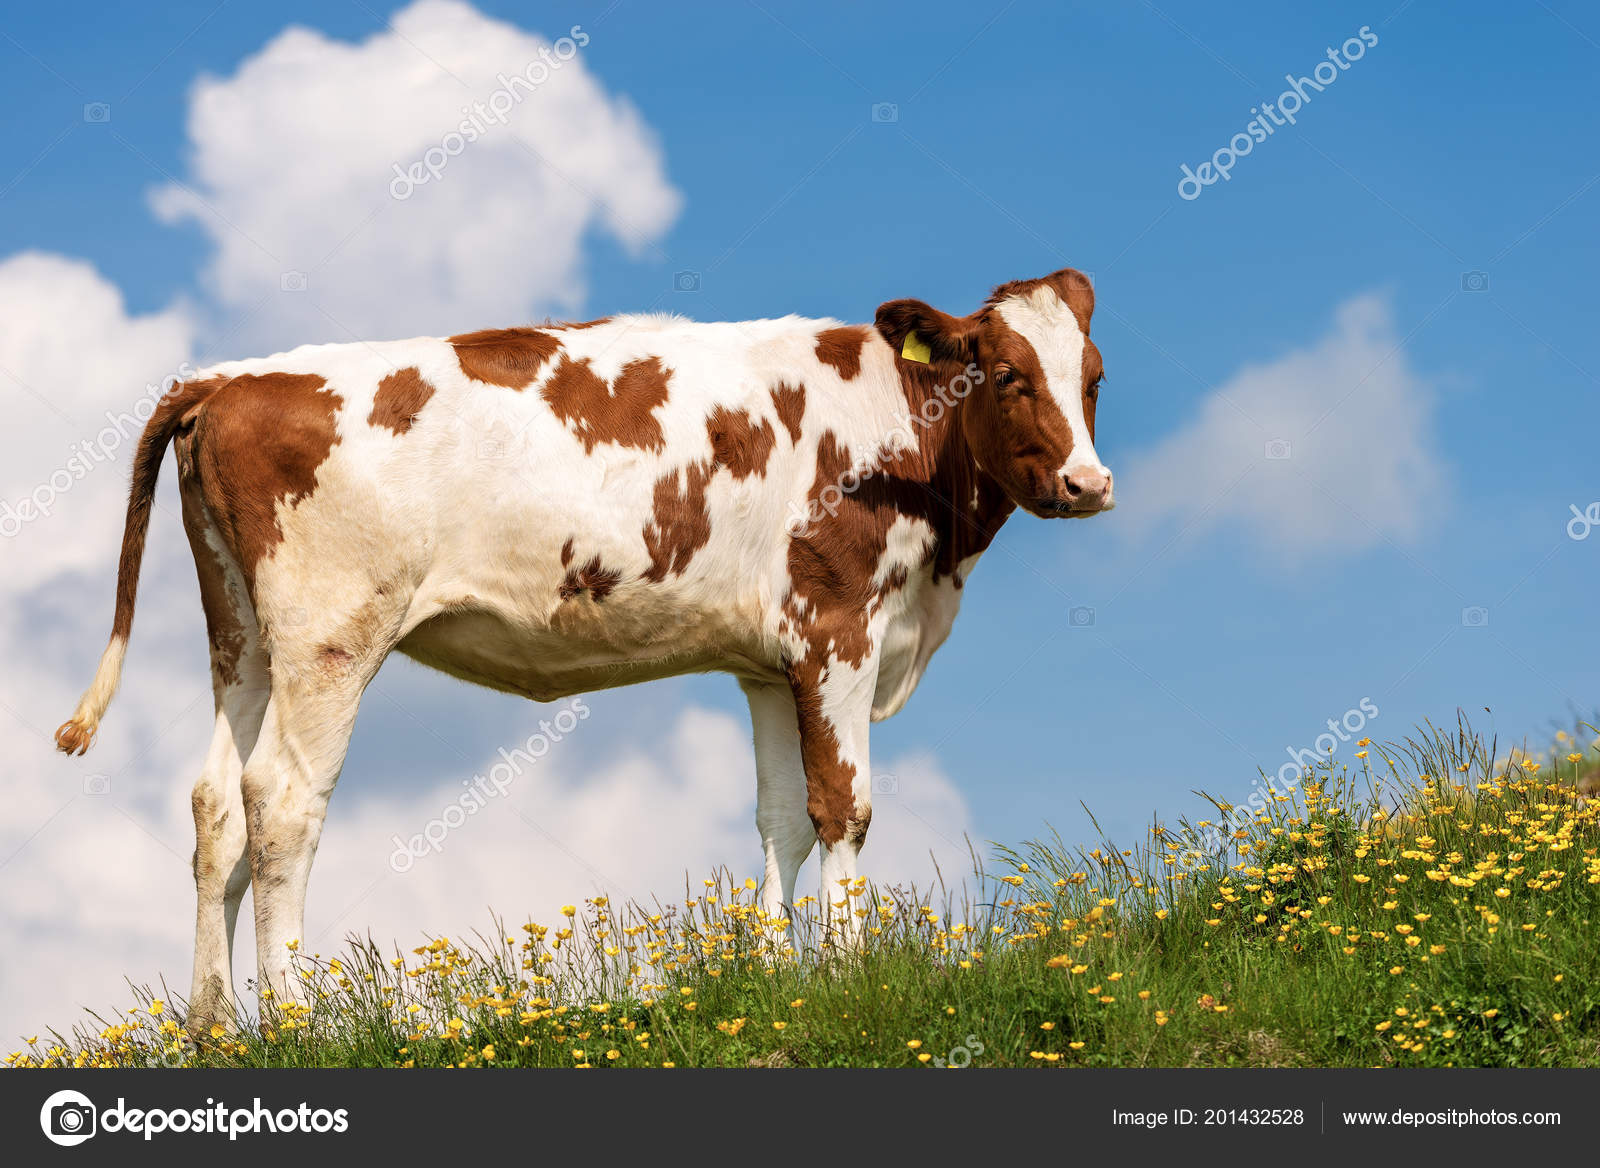 White Brown Calf Mountain Pasture Green Grass Yellow Flowers Blue